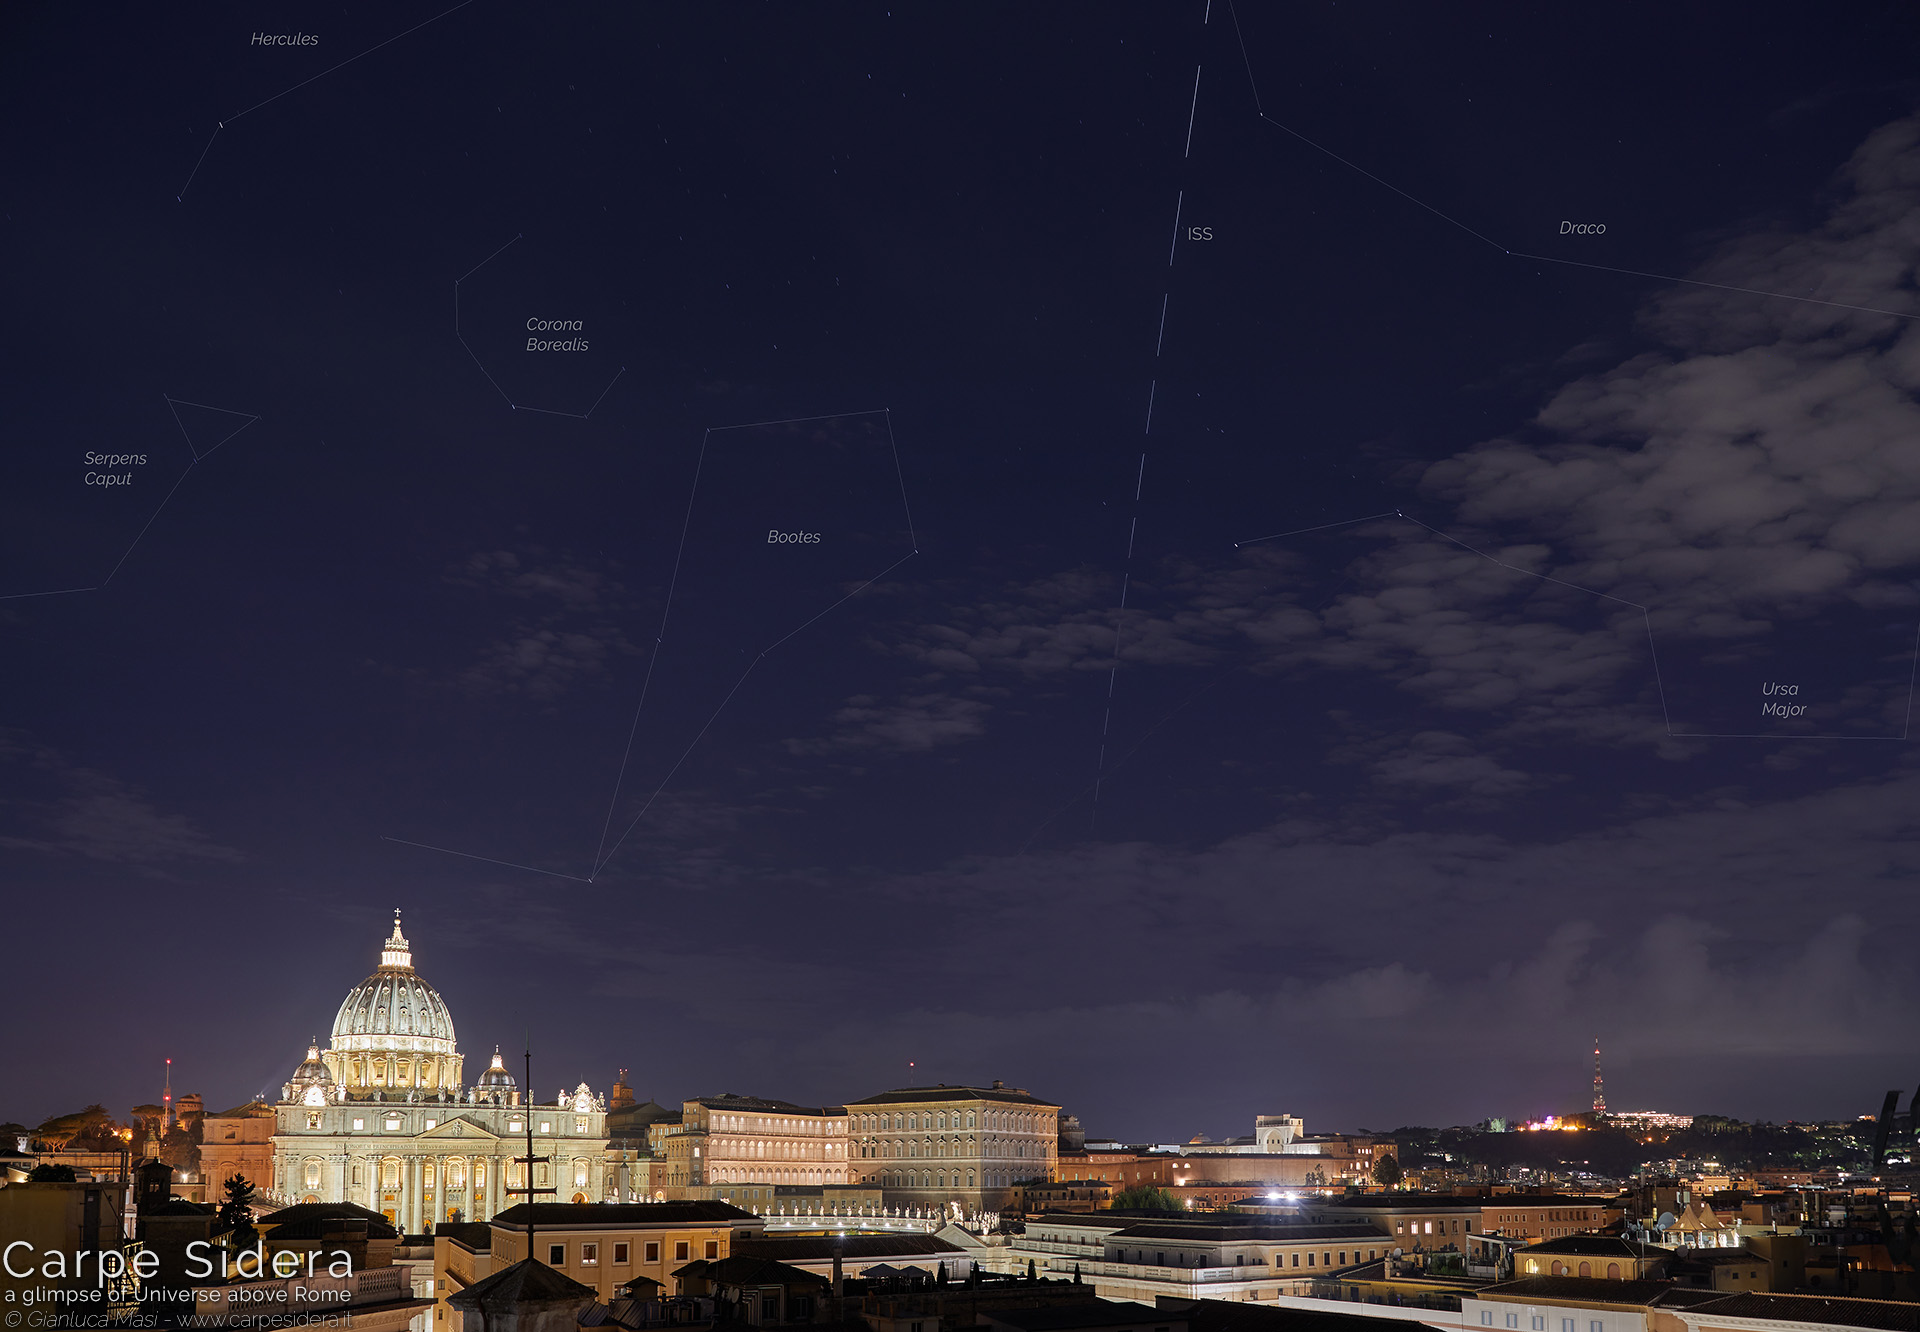 21. The International Space Station (ISS) passes above the St. Peter's Basilica.